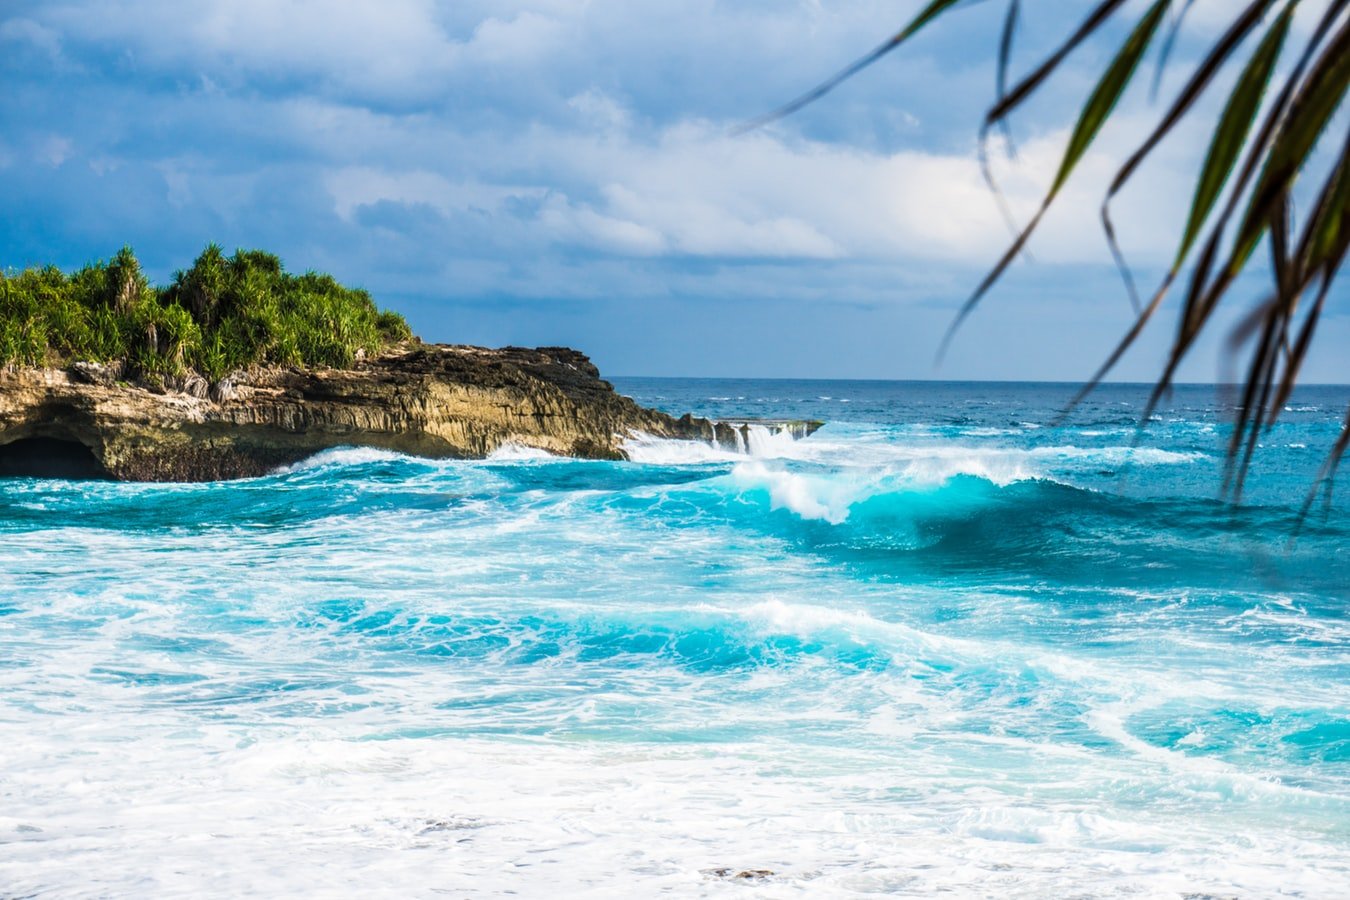 Bali destination guide ultimate guide to backpacking bali.